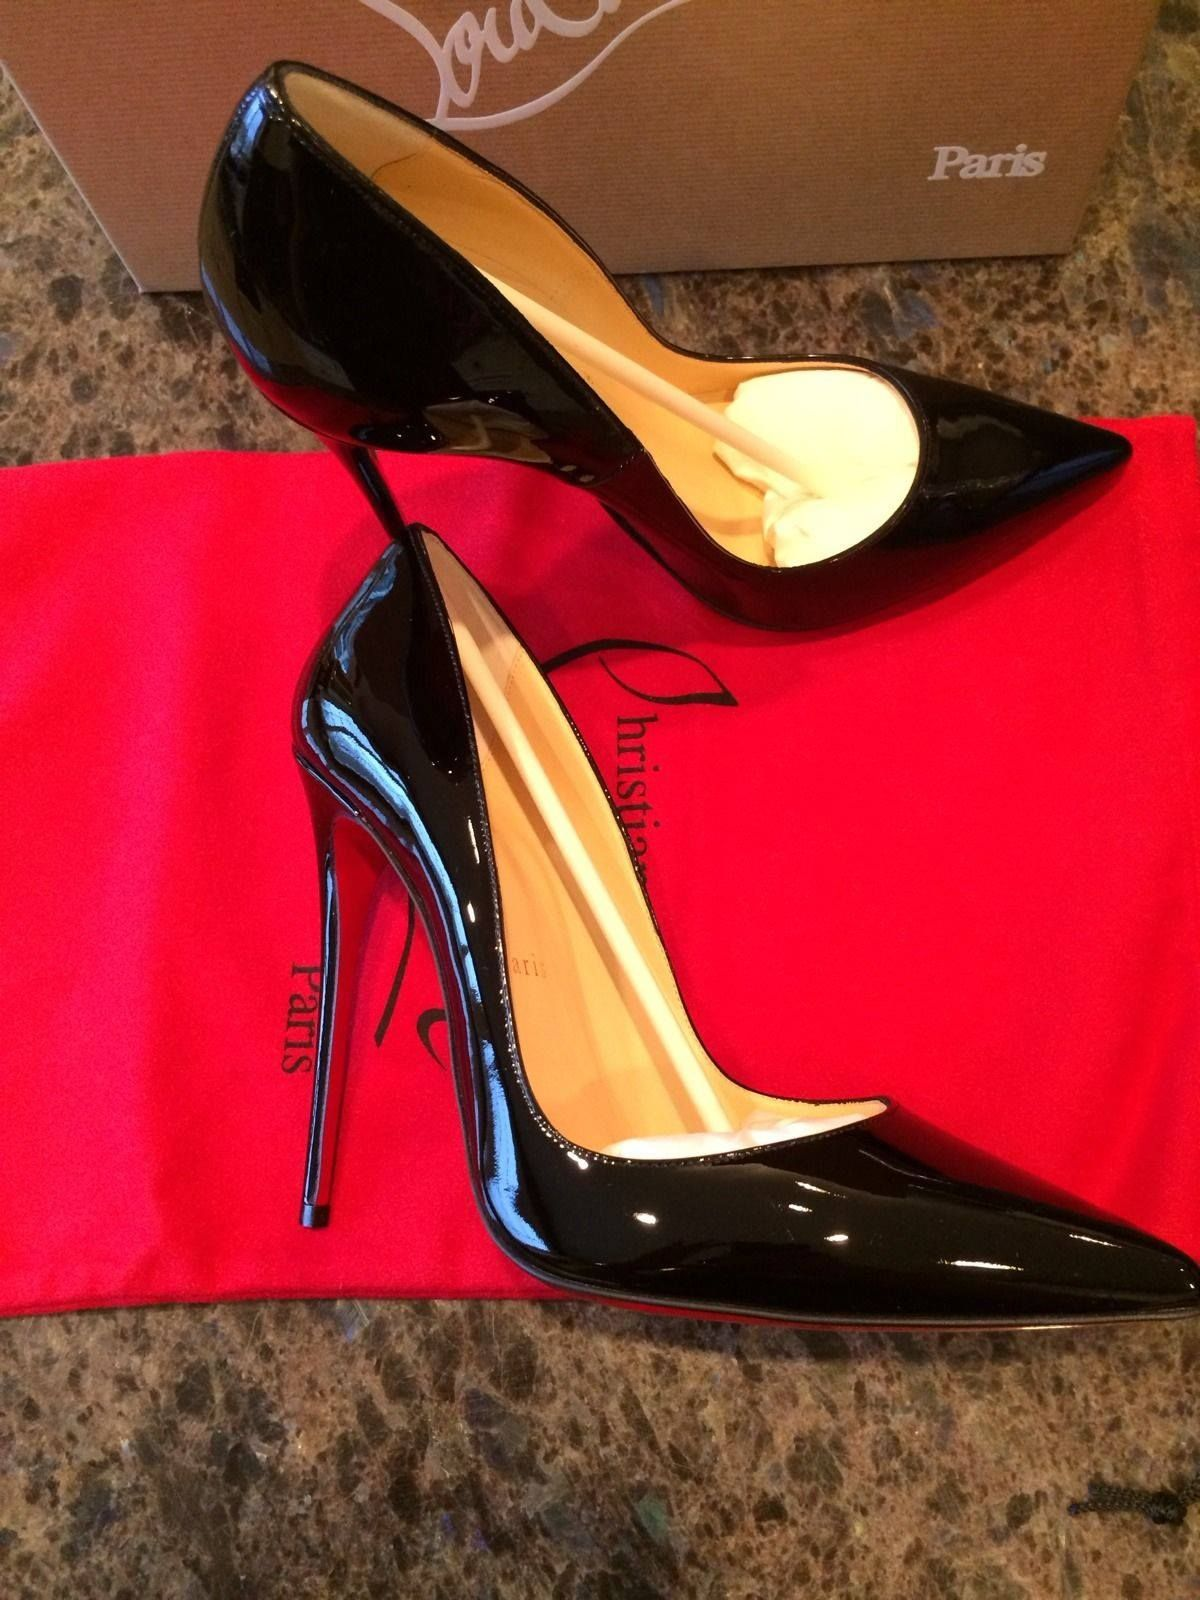 4a63b701ae89 How To Spot #Fake Christian #Louboutin #Shoes | Shoes Guide ...